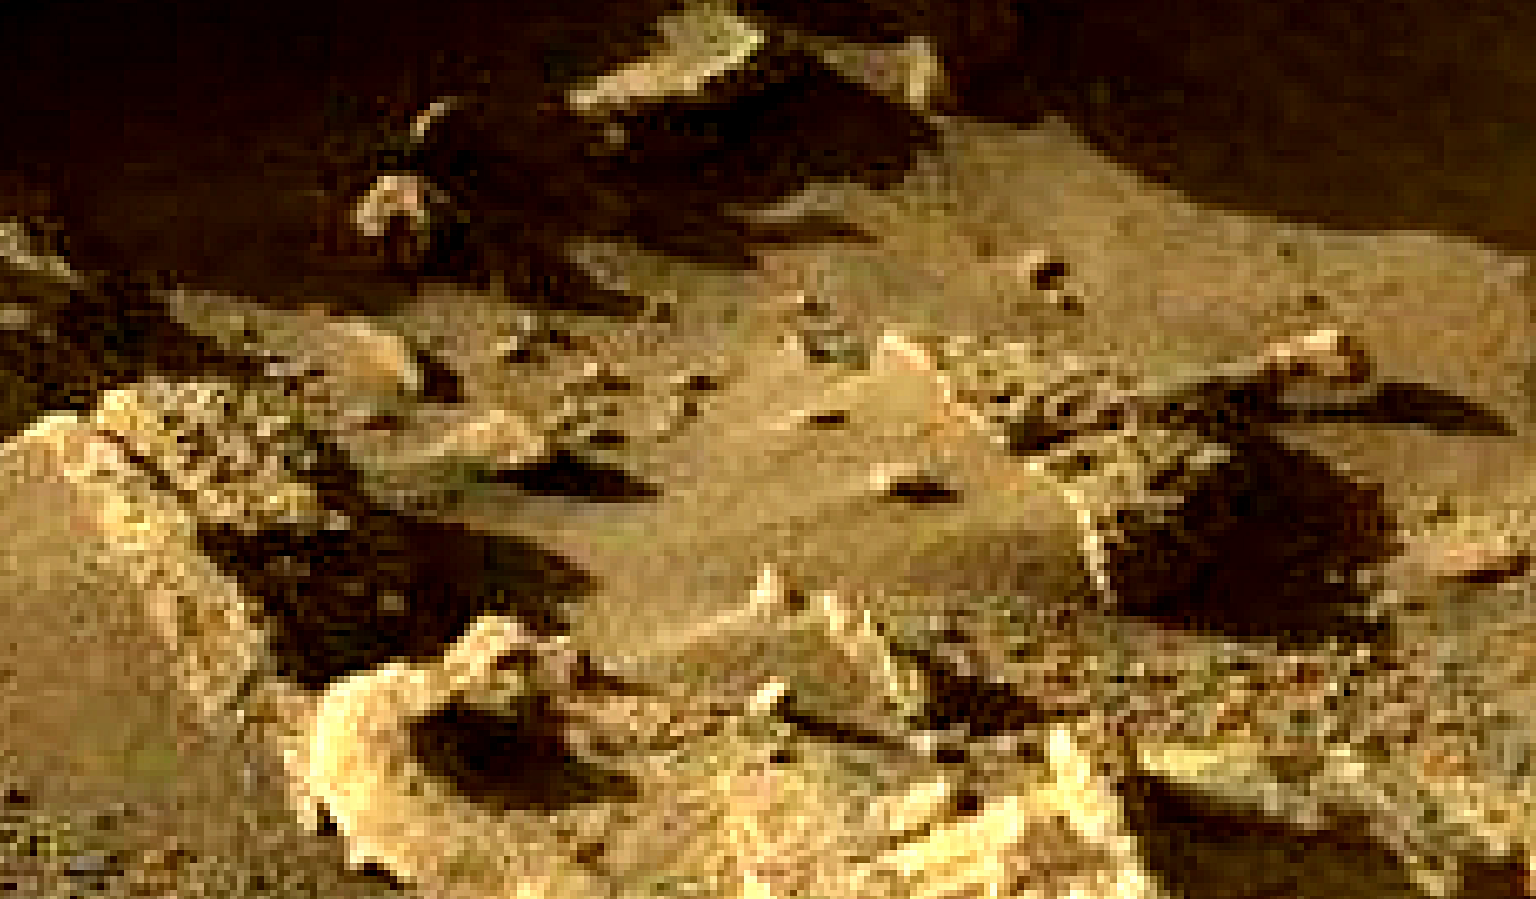 mars sol 1302 anomaly-artifacts 1b1 was life on mars